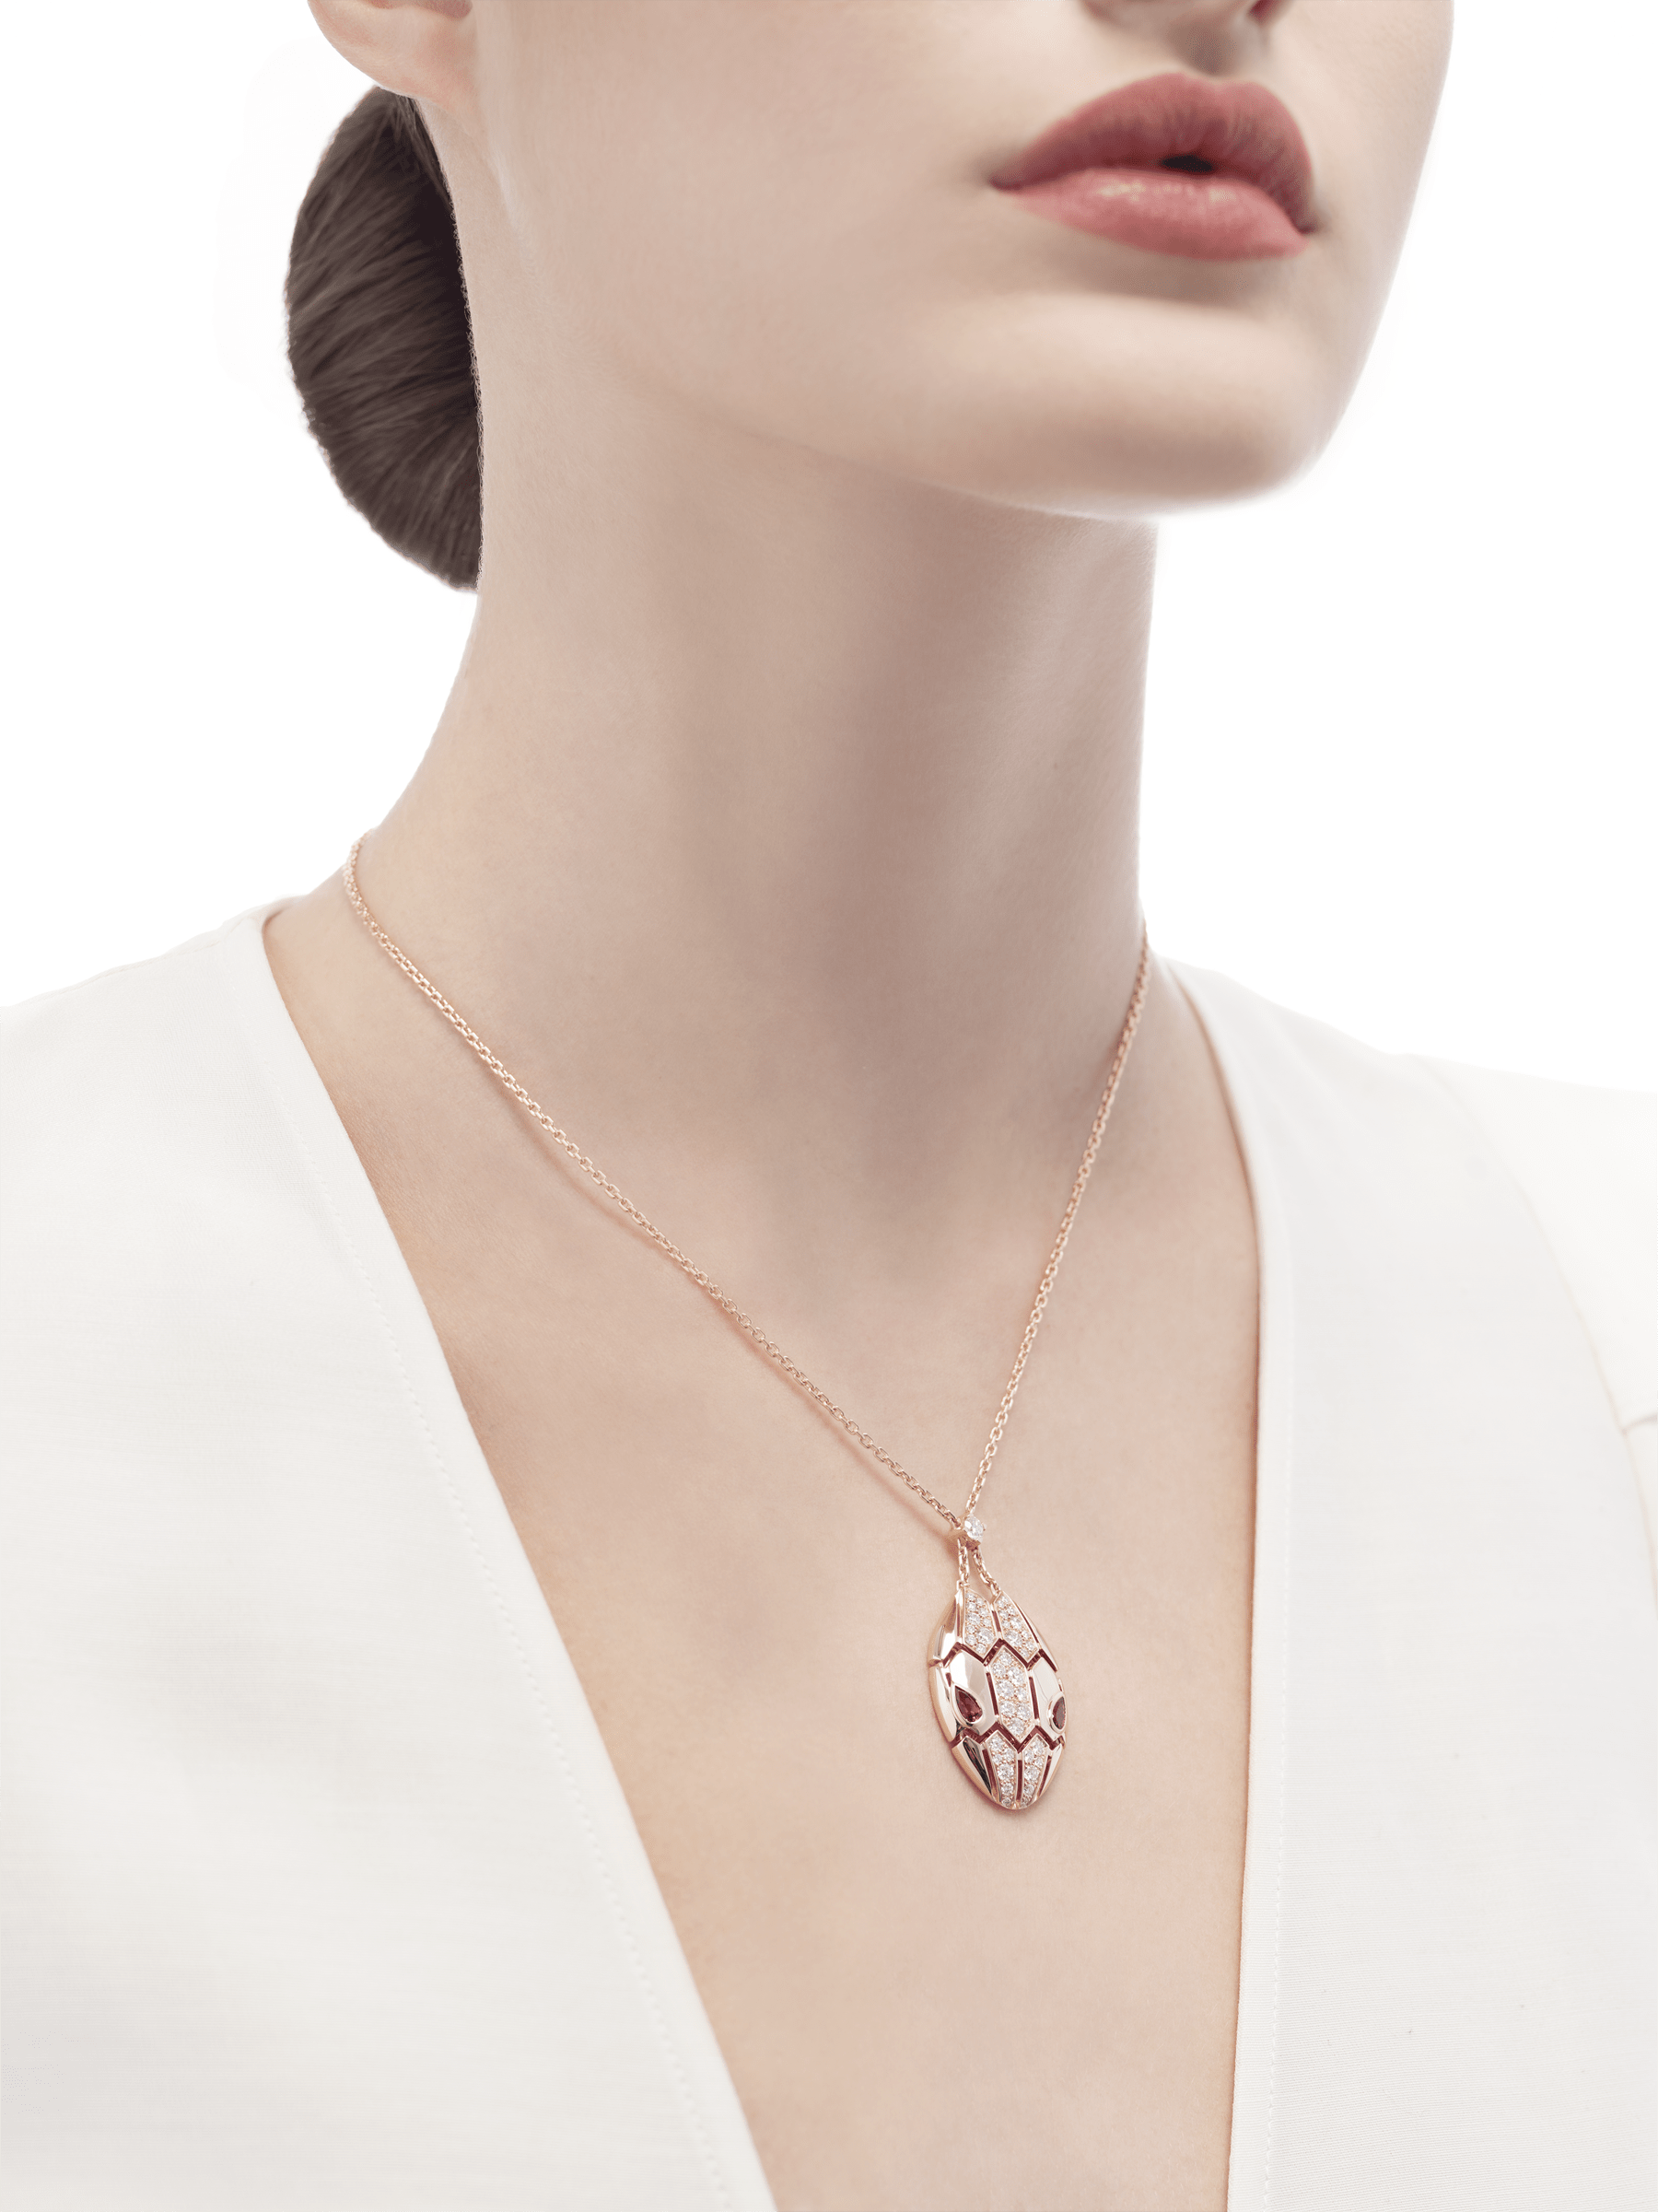 Serpenti necklace with 18 kt rose gold chain and pendant, set with rubellite eyes and demi pavé diamonds. 352748 image 4